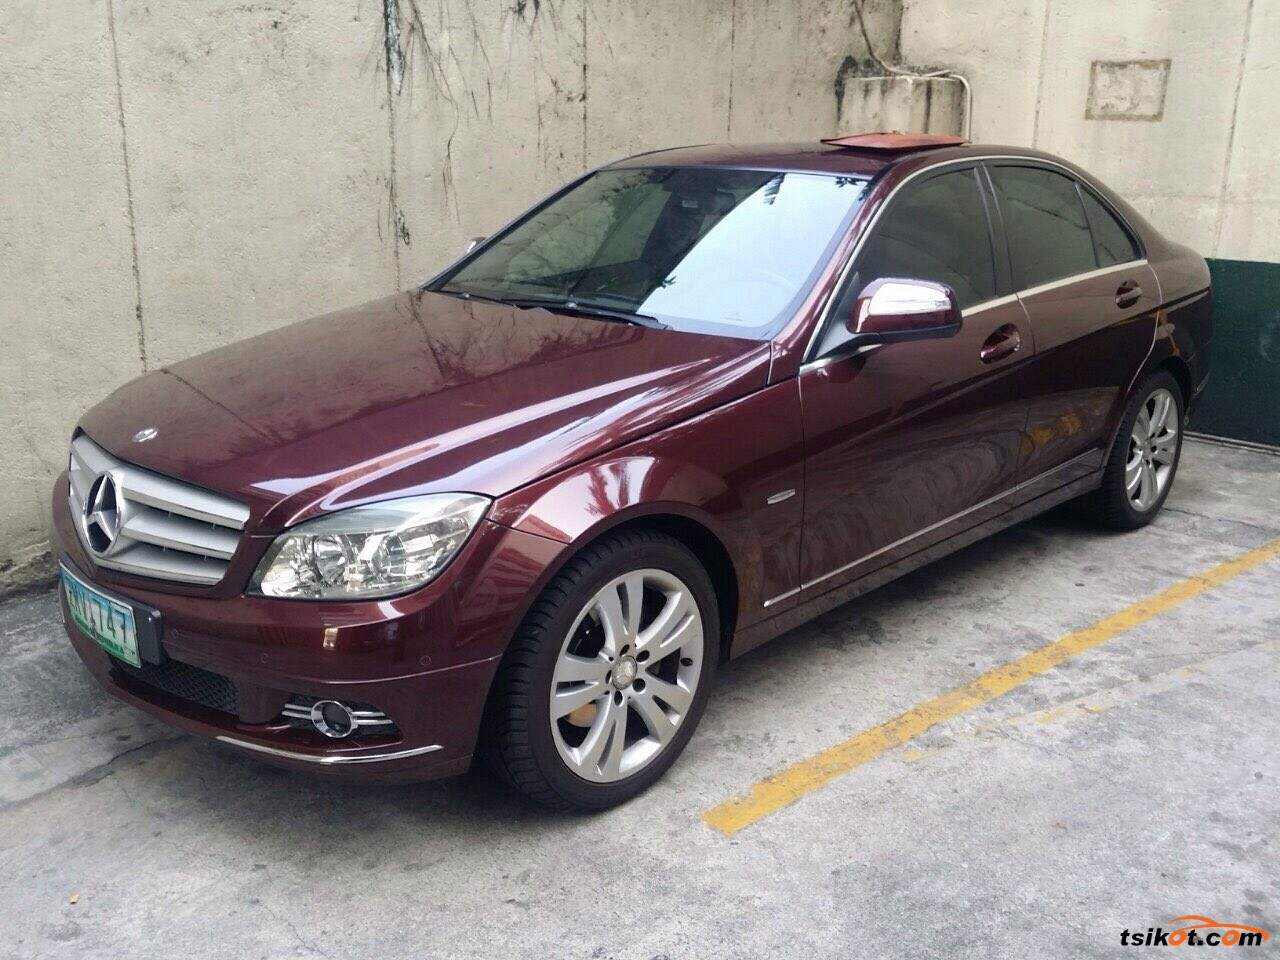 mercedes benz c class 2008 car for sale metro manila philippines. Black Bedroom Furniture Sets. Home Design Ideas